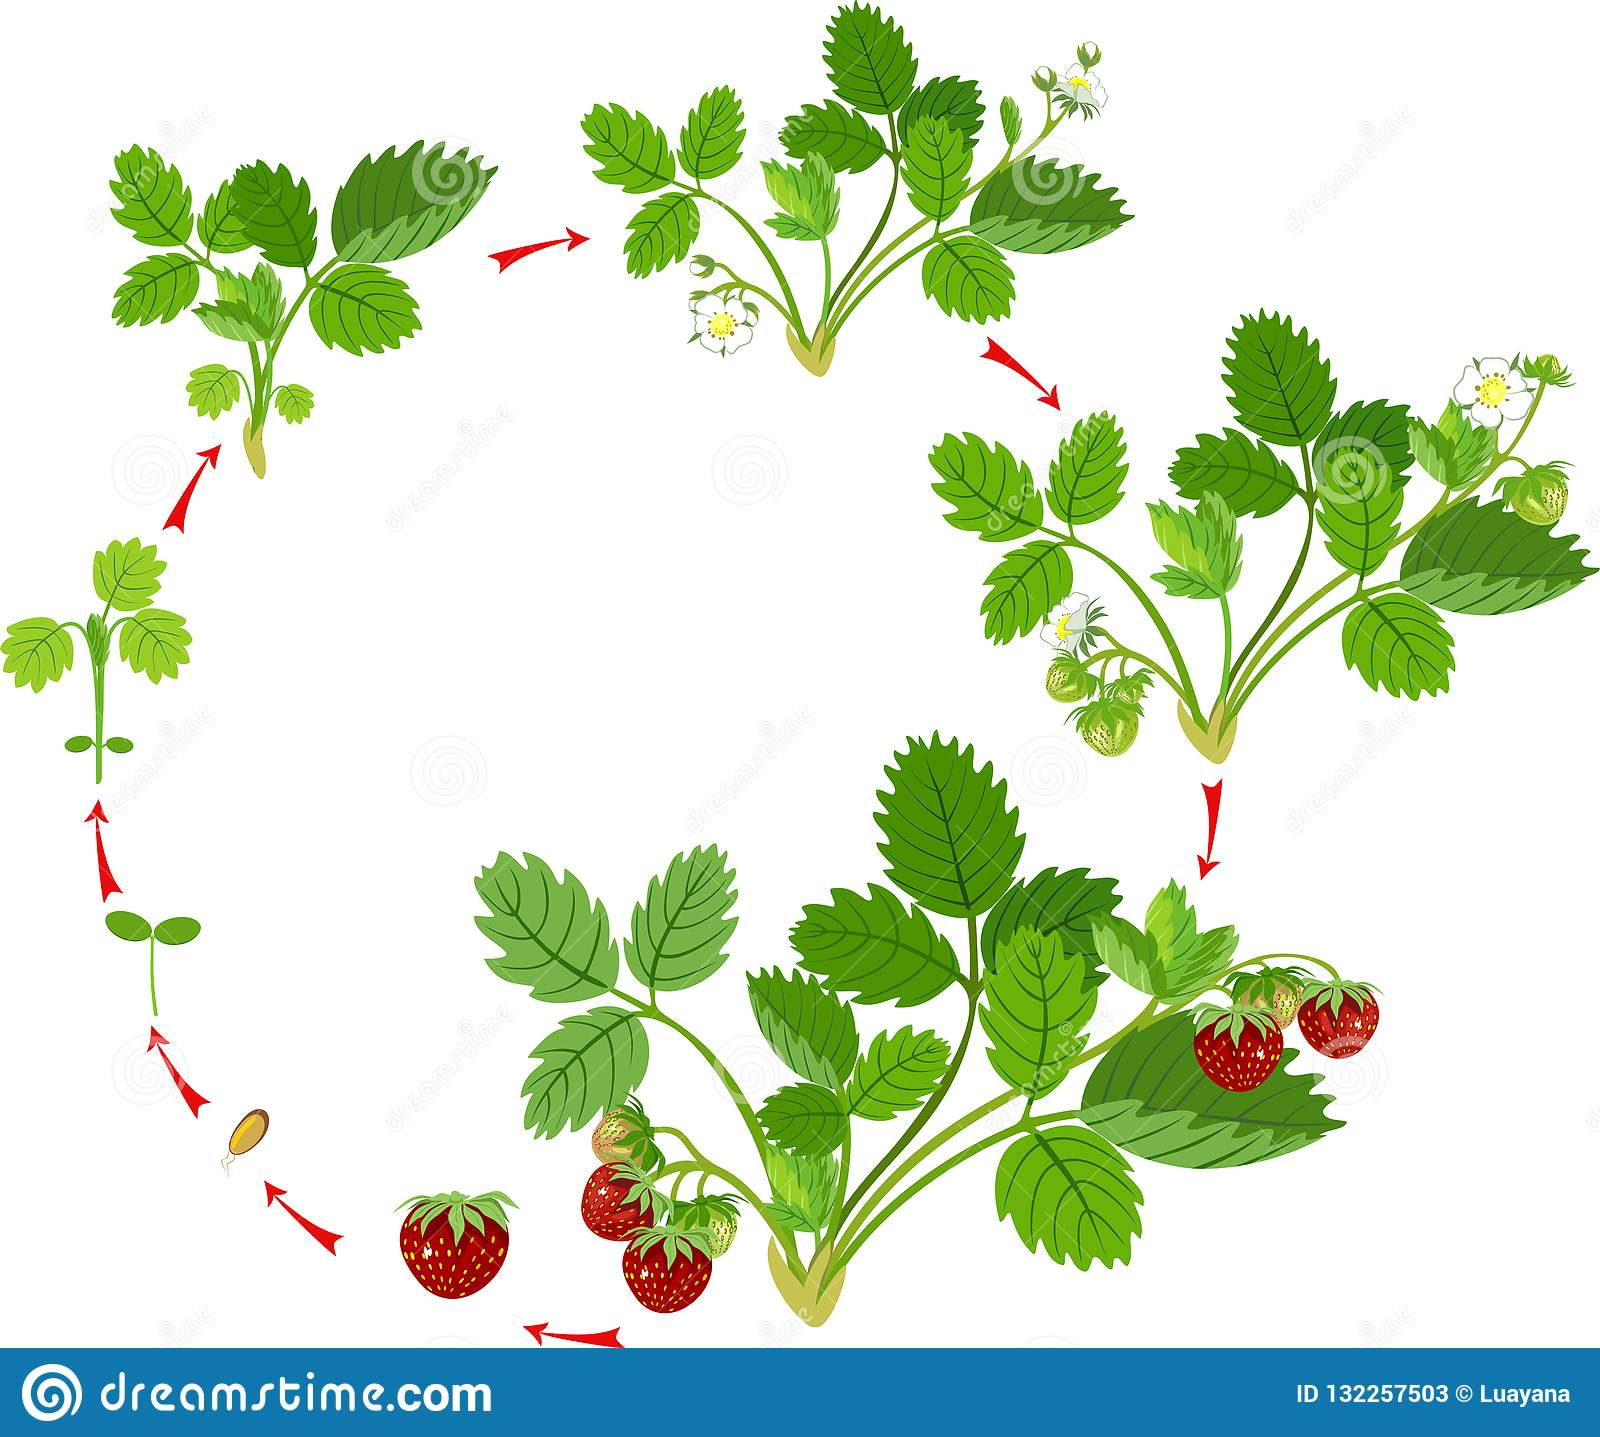 Life Cycle Of Strawberry  Stock Vector  Illustration Of